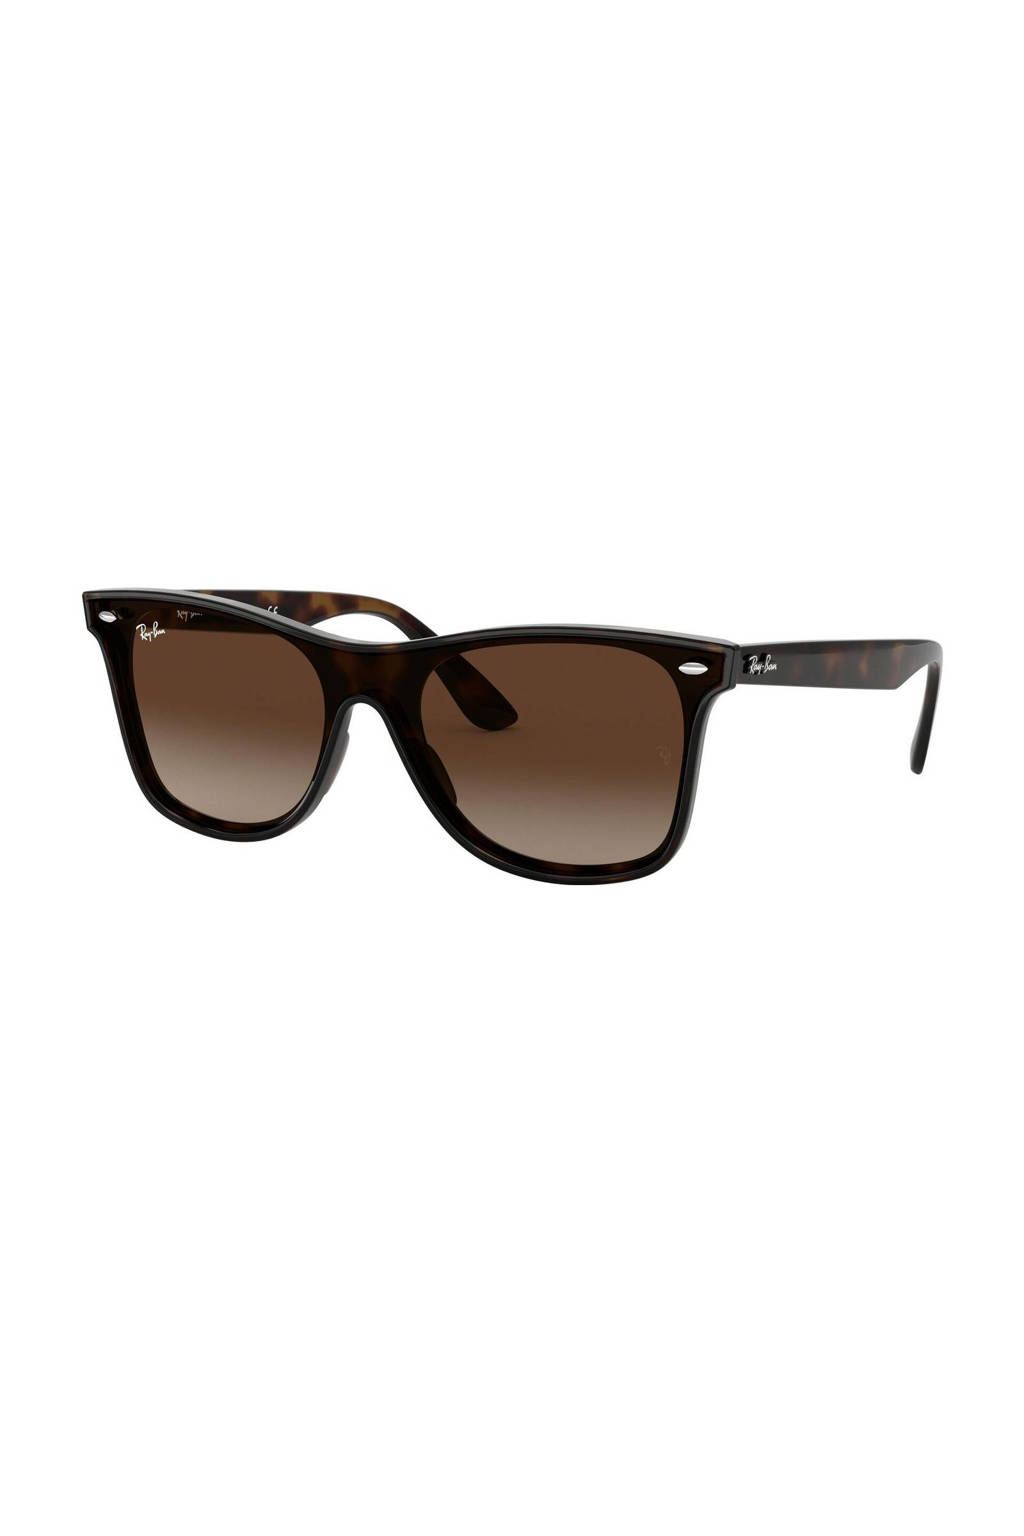 Ray-Ban zonnebril 0RB4440N, Bruin